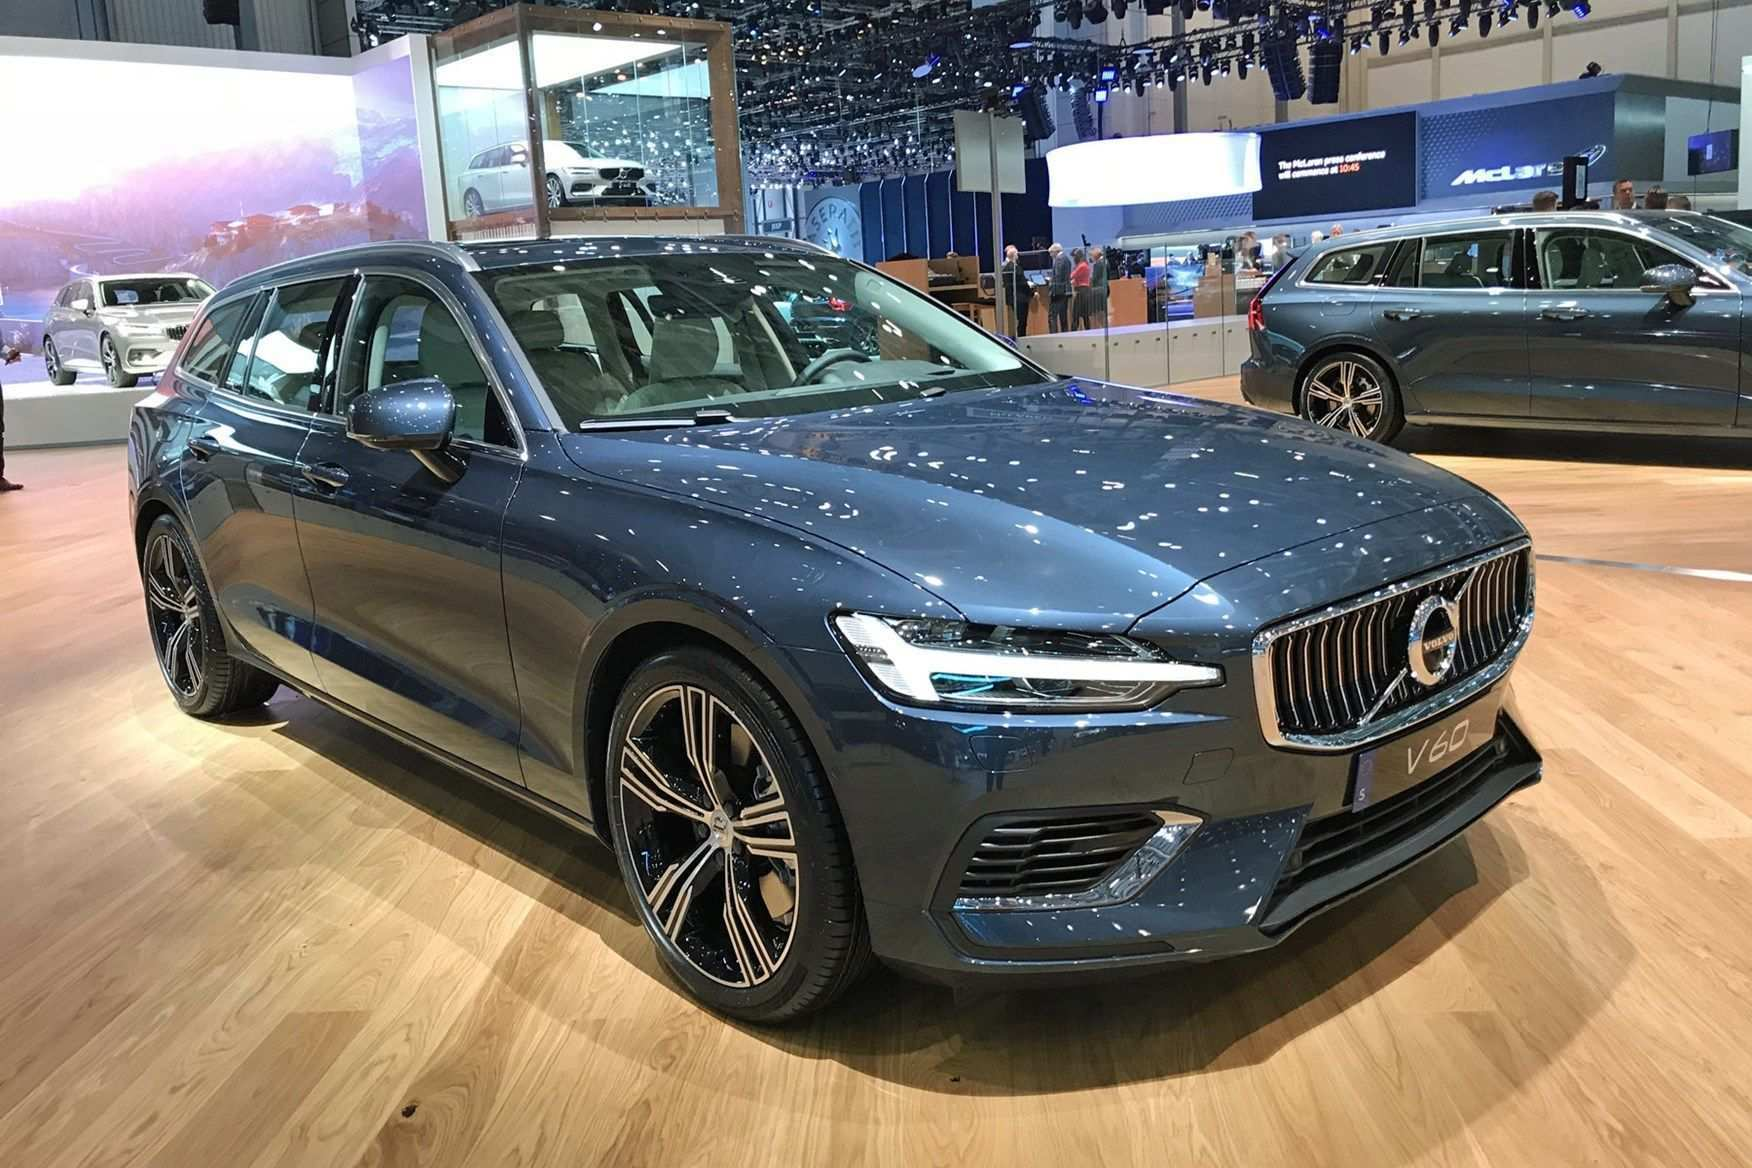 71 All New Volvo Open 2019 Dates Engine